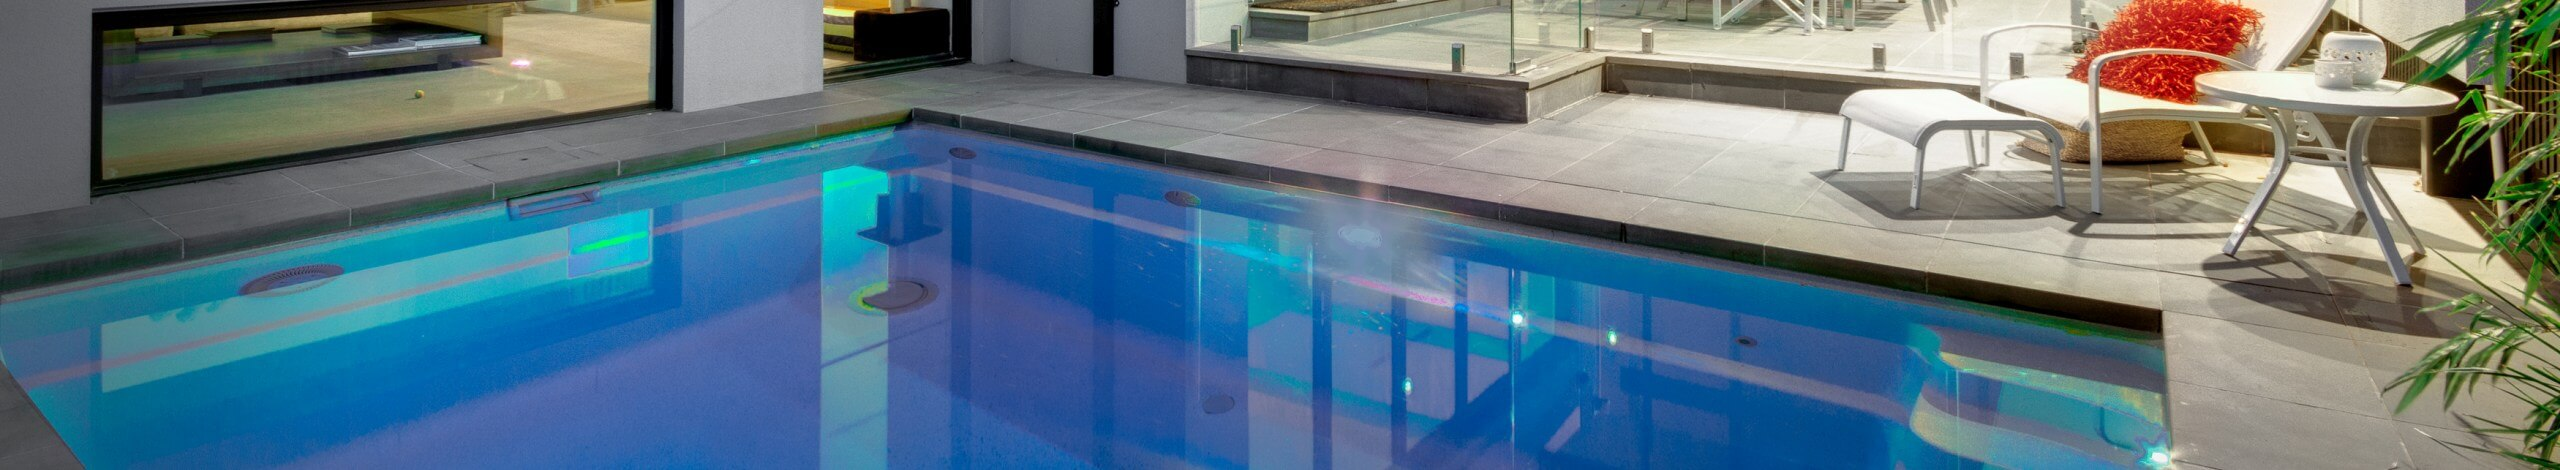 Plunge and Courtyard Fibreglass Pool Shape Header